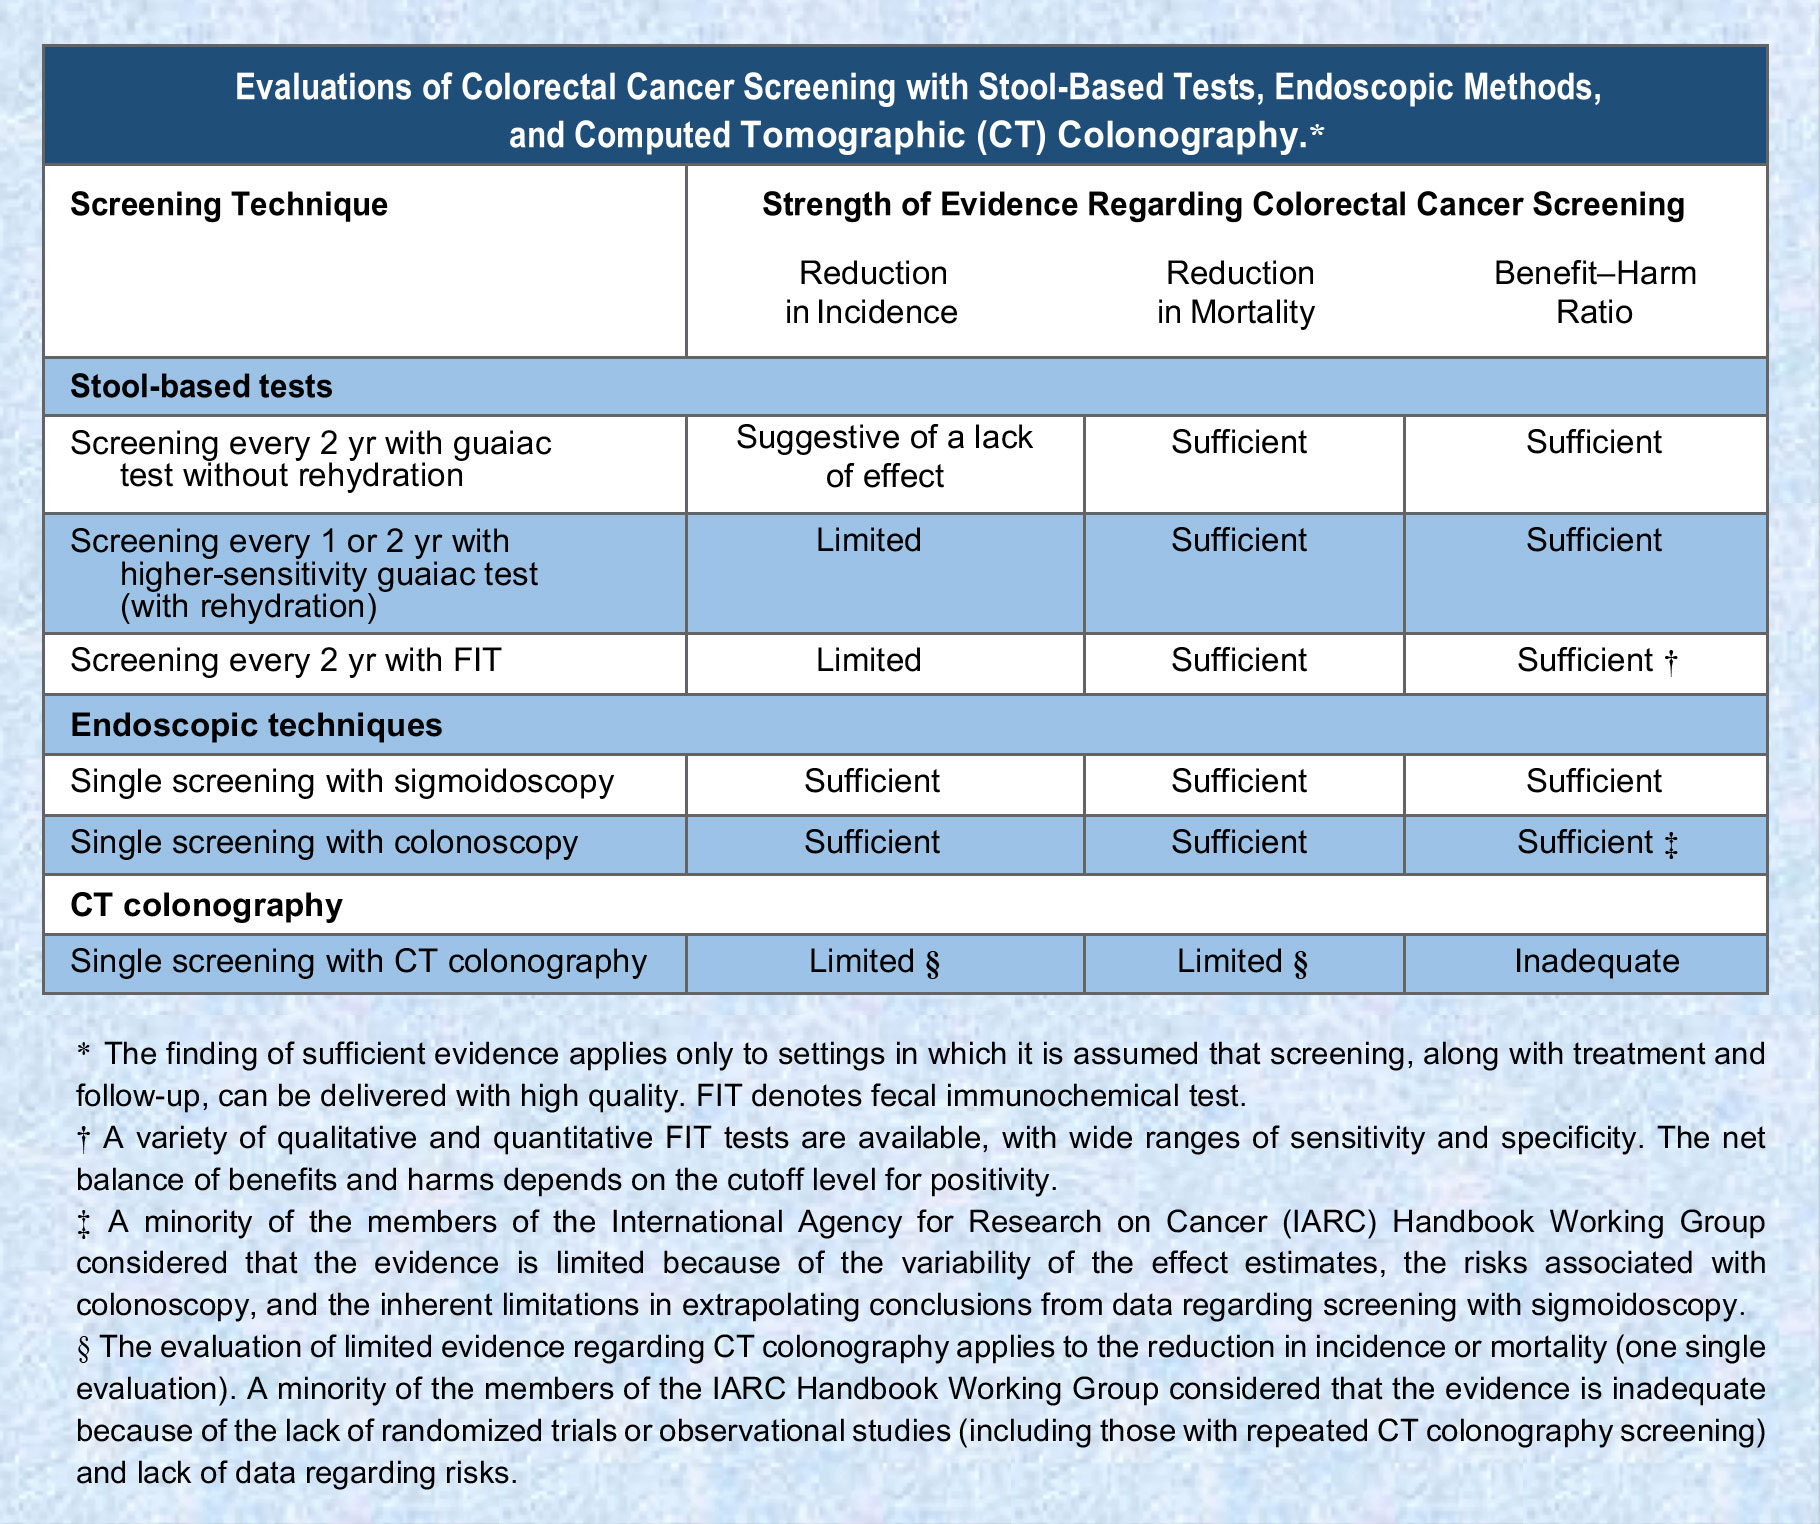 The Group Of Experts At Iarc Demonstrates The Effectiveness Of Main Methods For Early Detection Of Colorectal Cancer And Their Benefits In Cancer Screening As Published In The New England Journal Of